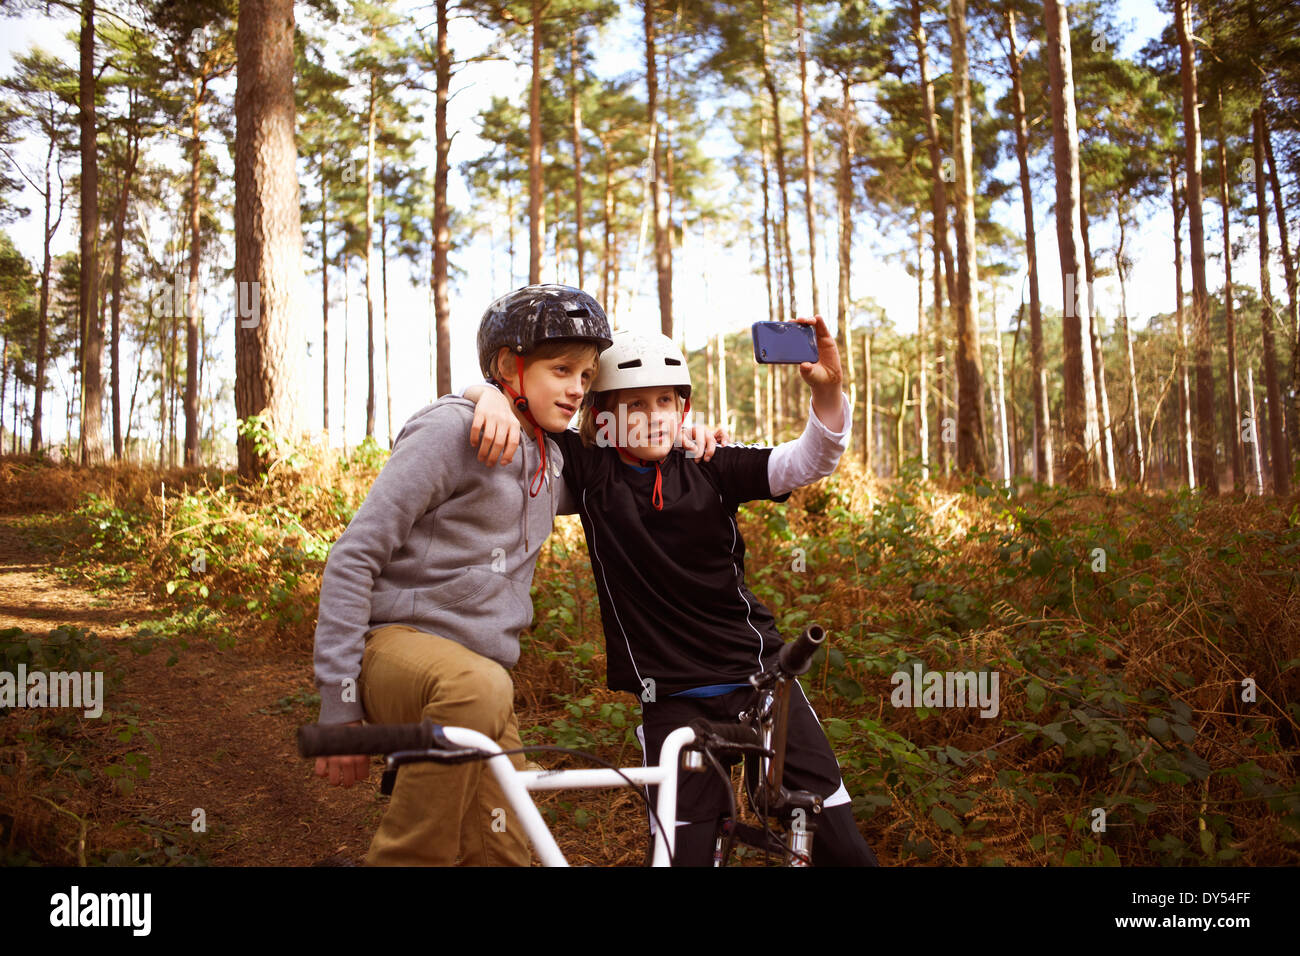 Twin brothers on BMX bikes taking self portrait Stock Photo